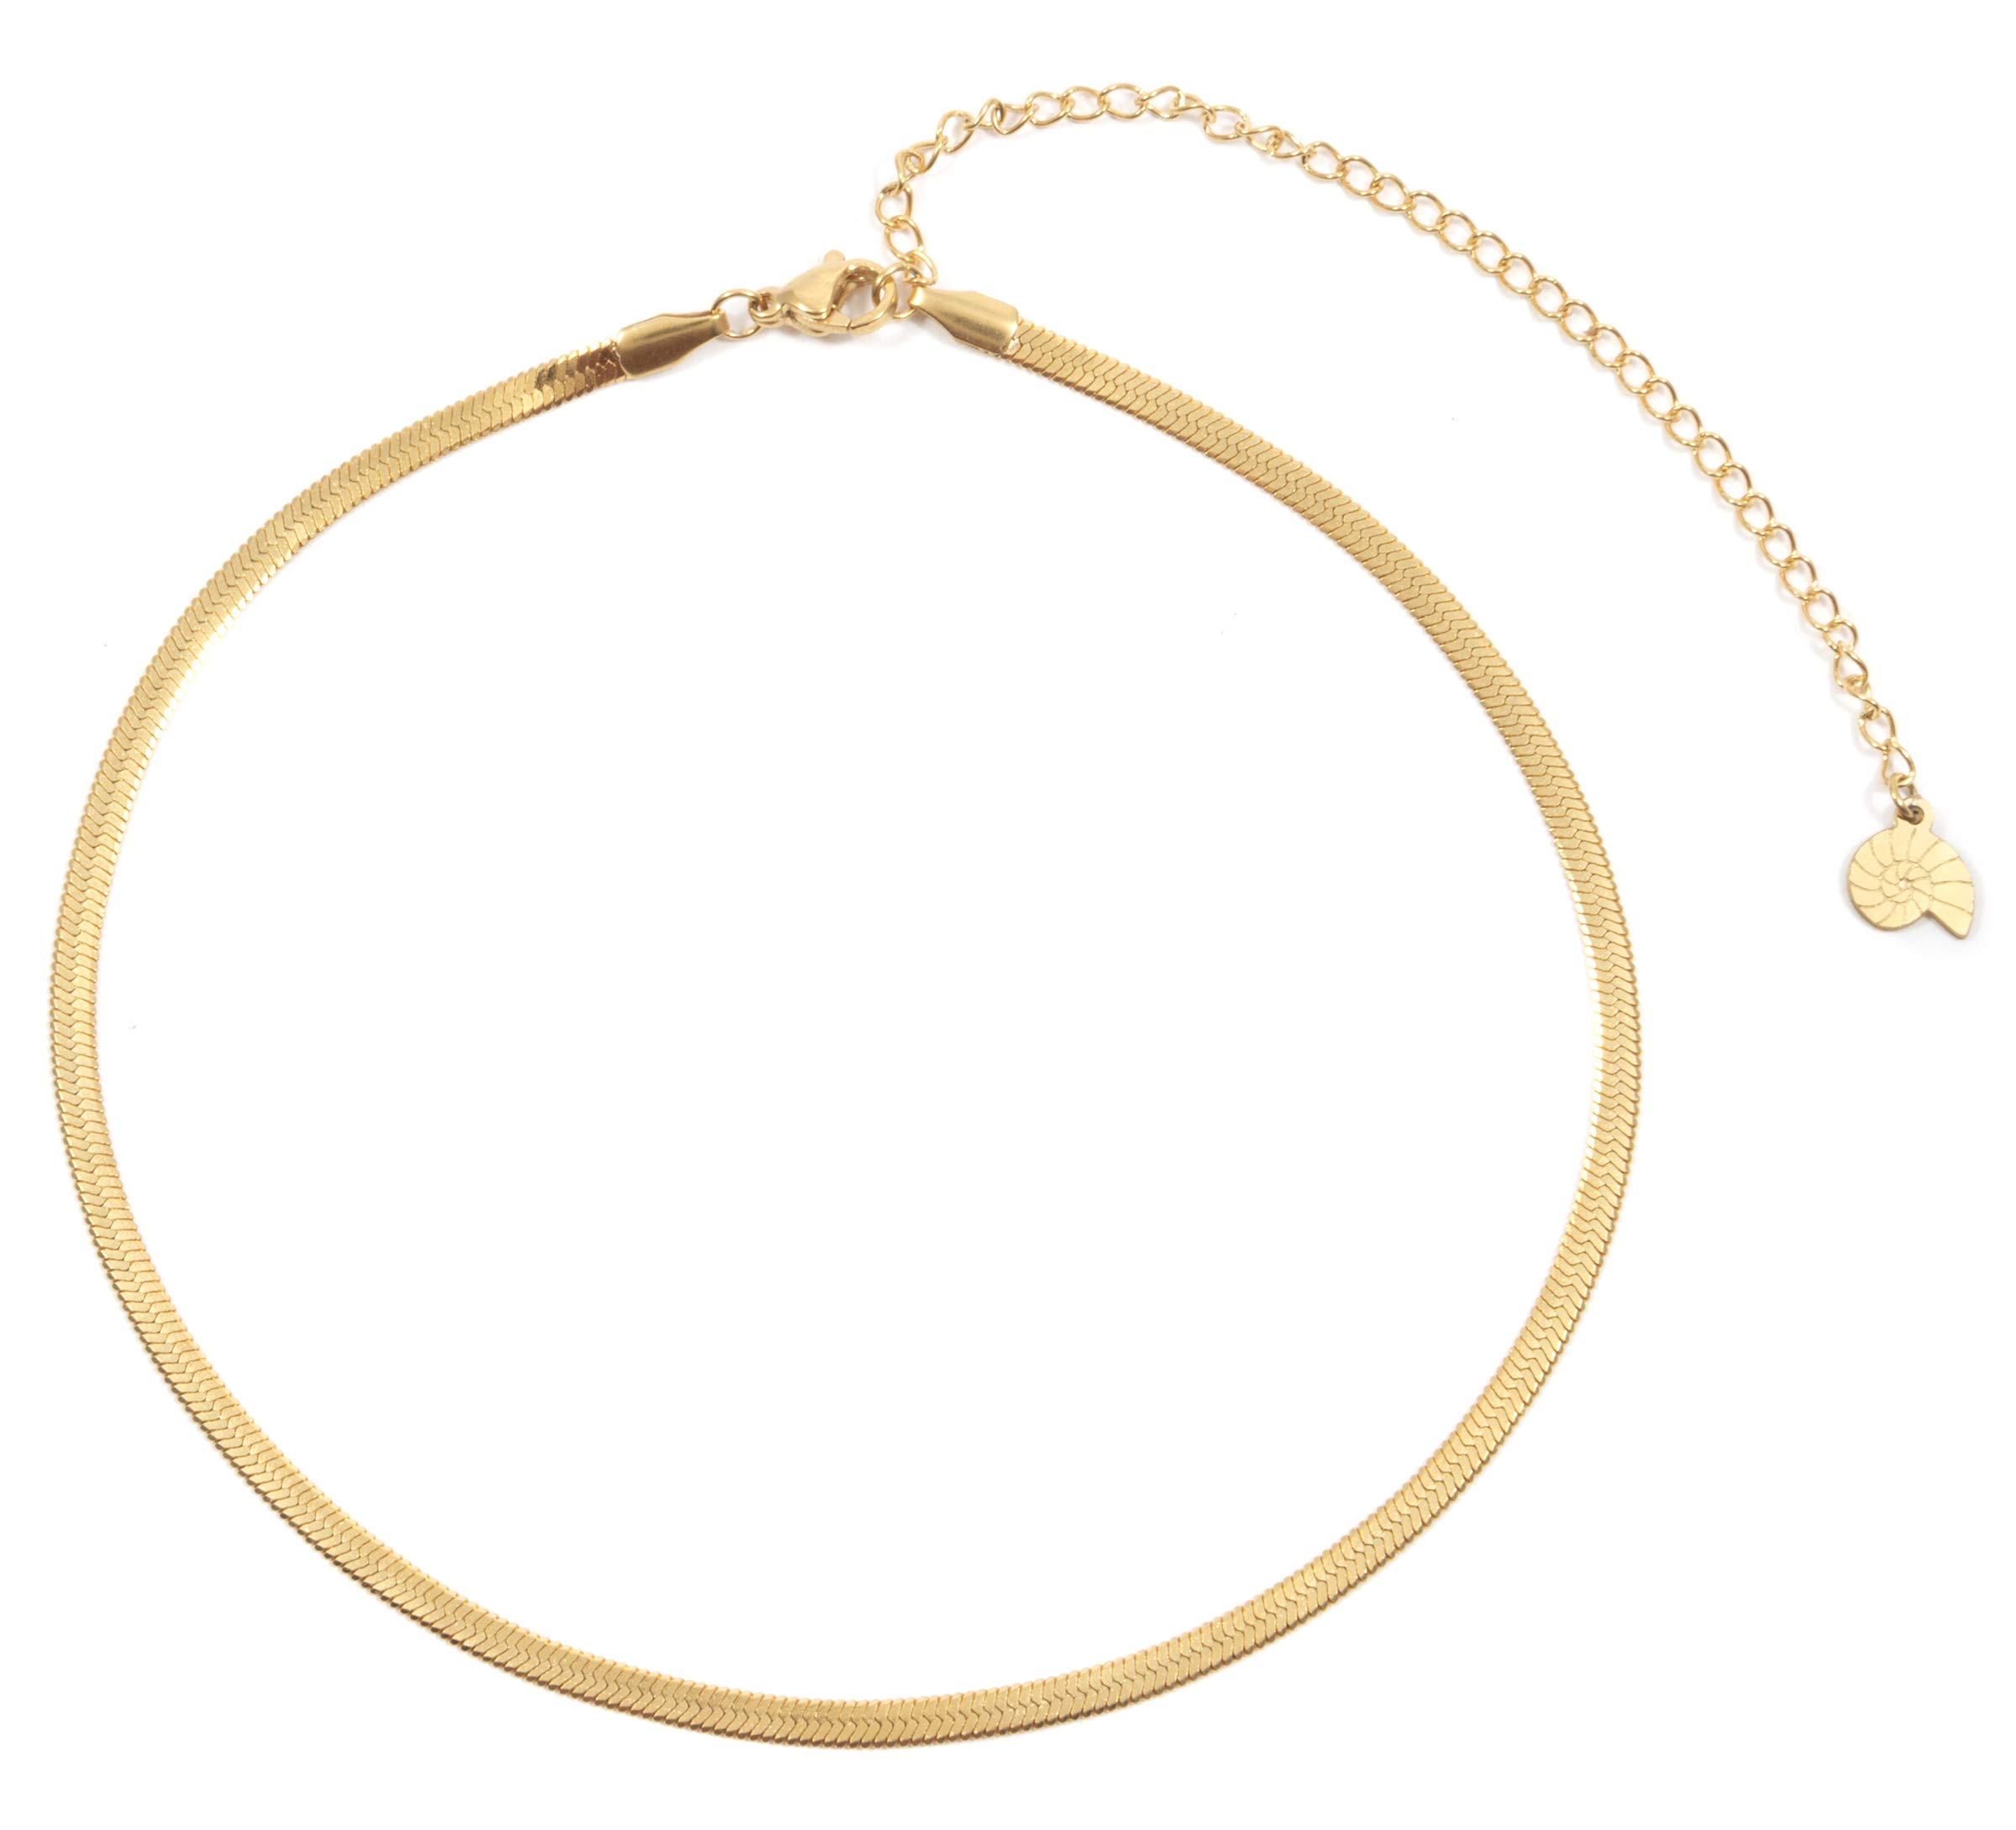 Happiness Boutique Herringbone Choker Necklace in Gold Color | Delicate Necklace Stainless Steel